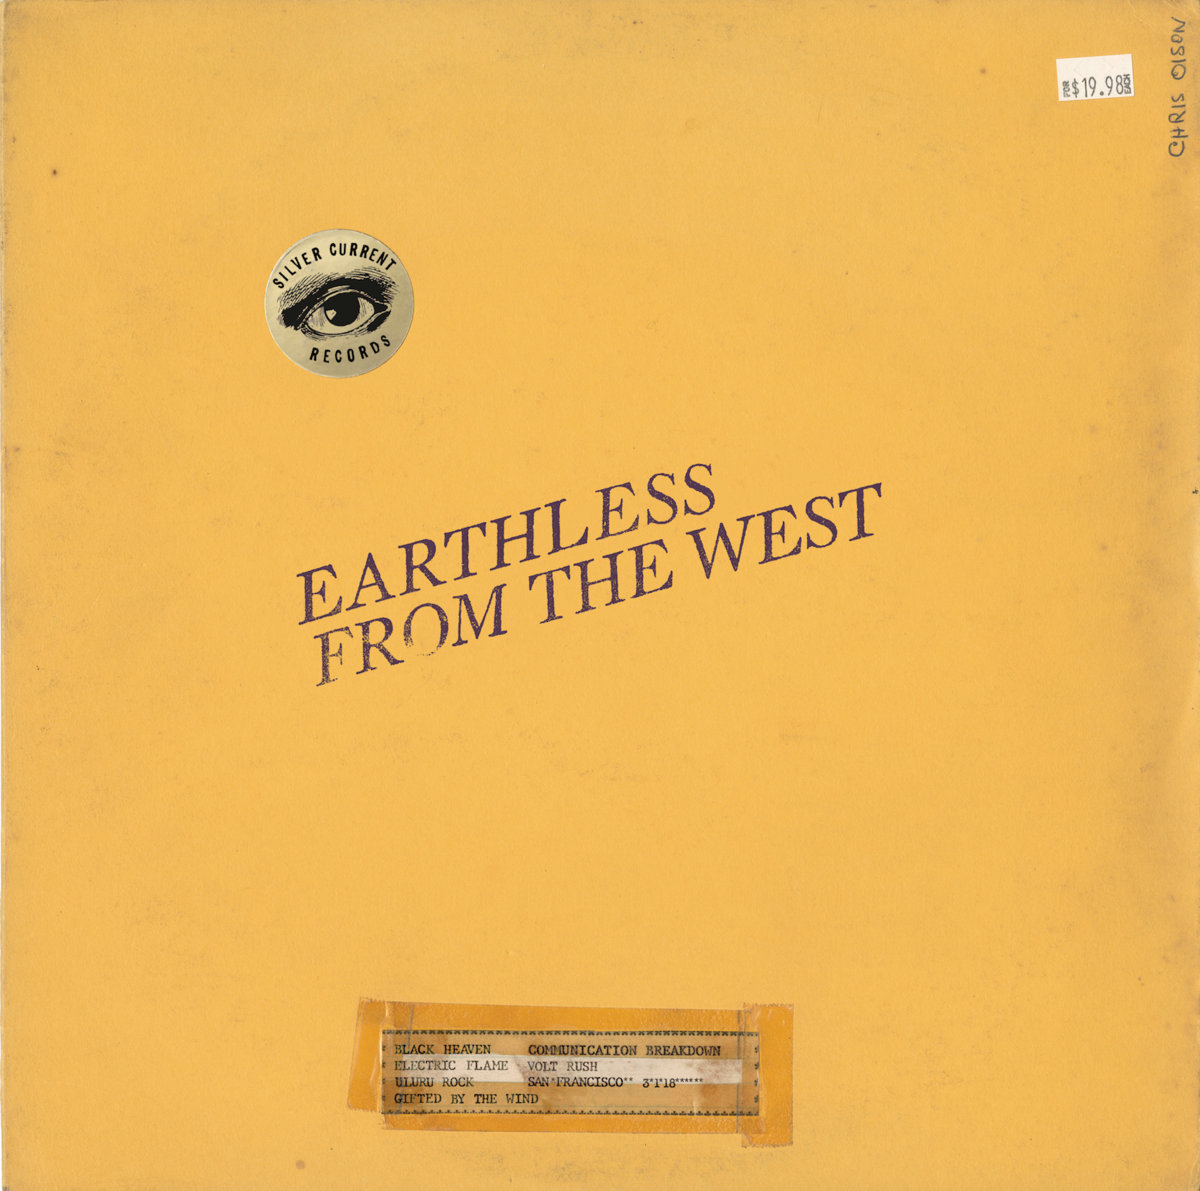 earthless from the west